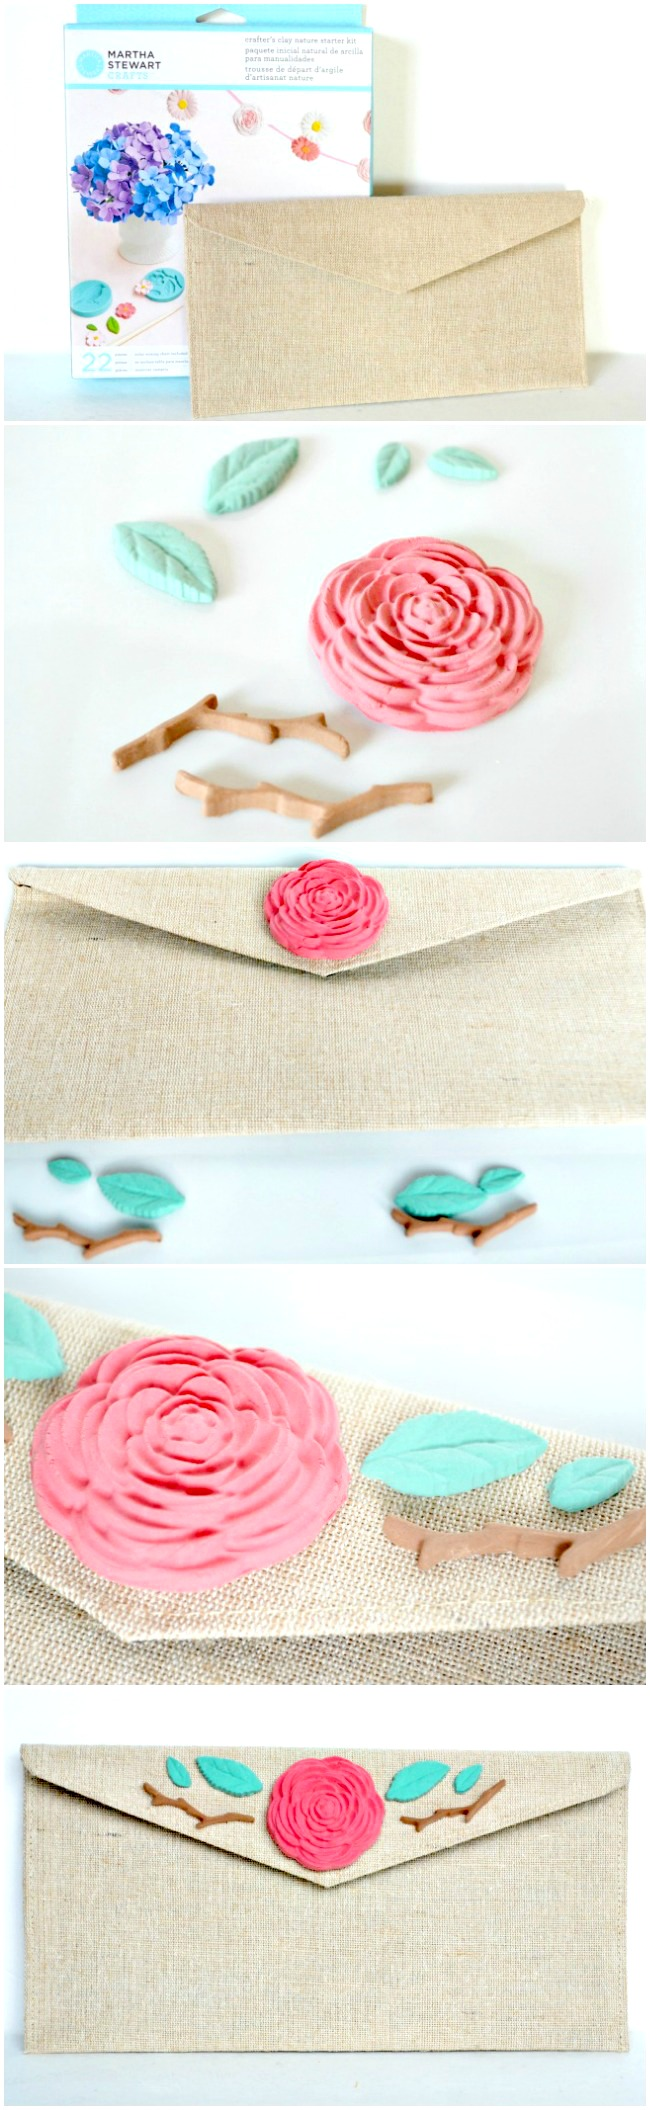 How to make a DIY Floral Burlap Clutch with Martha Stewart Crafts | #marthastewartcrafts #12monthsofmartha